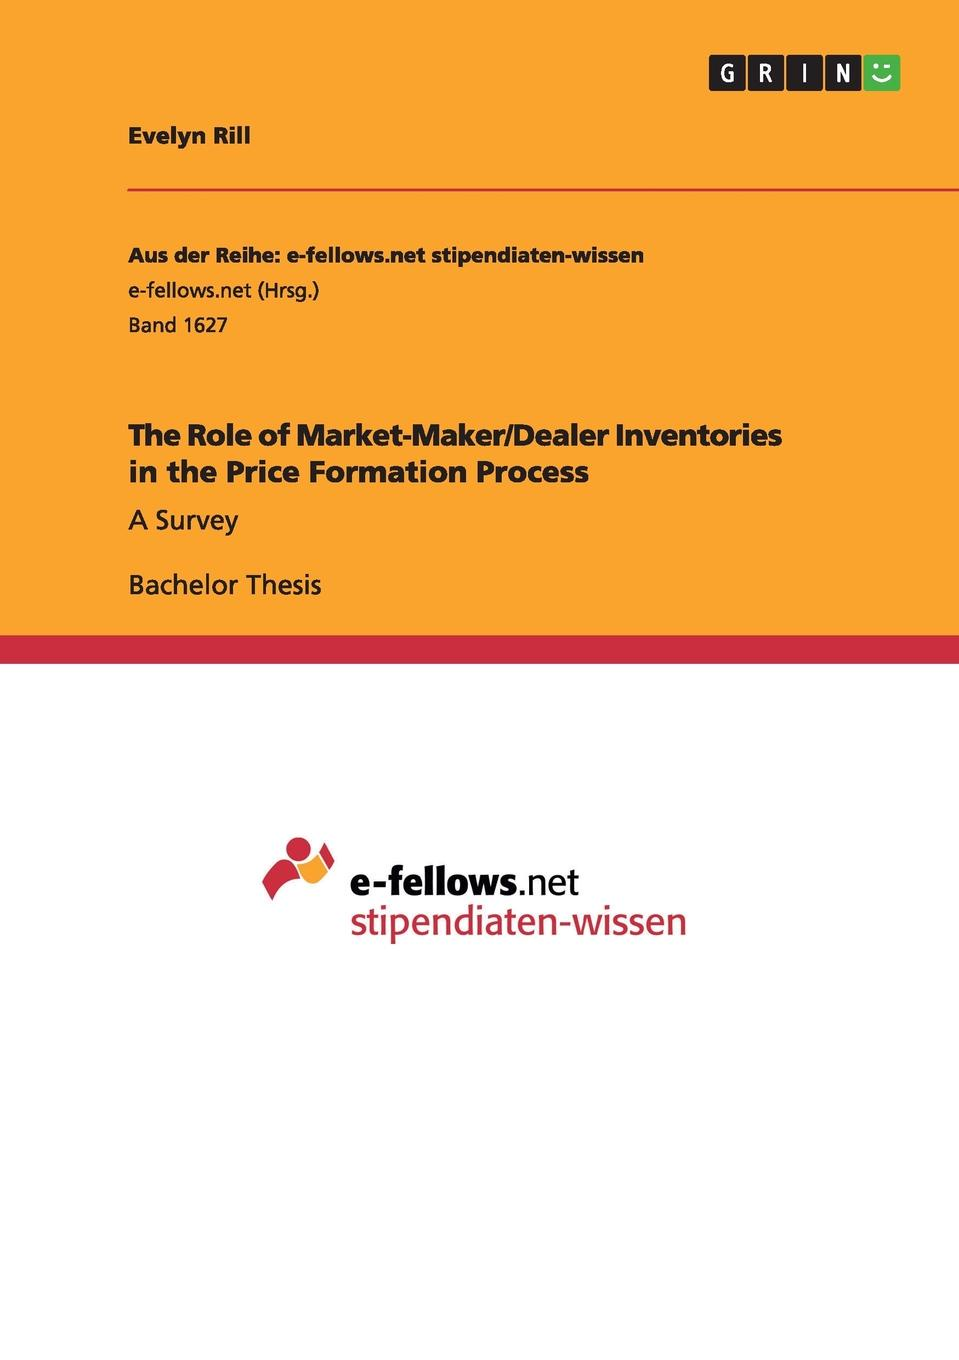 Evelyn Rill The Role of Market-Maker/Dealer Inventories in the Price Formation Process halil kiymaz market microstructure in emerging and developed markets price discovery information flows and transaction costs